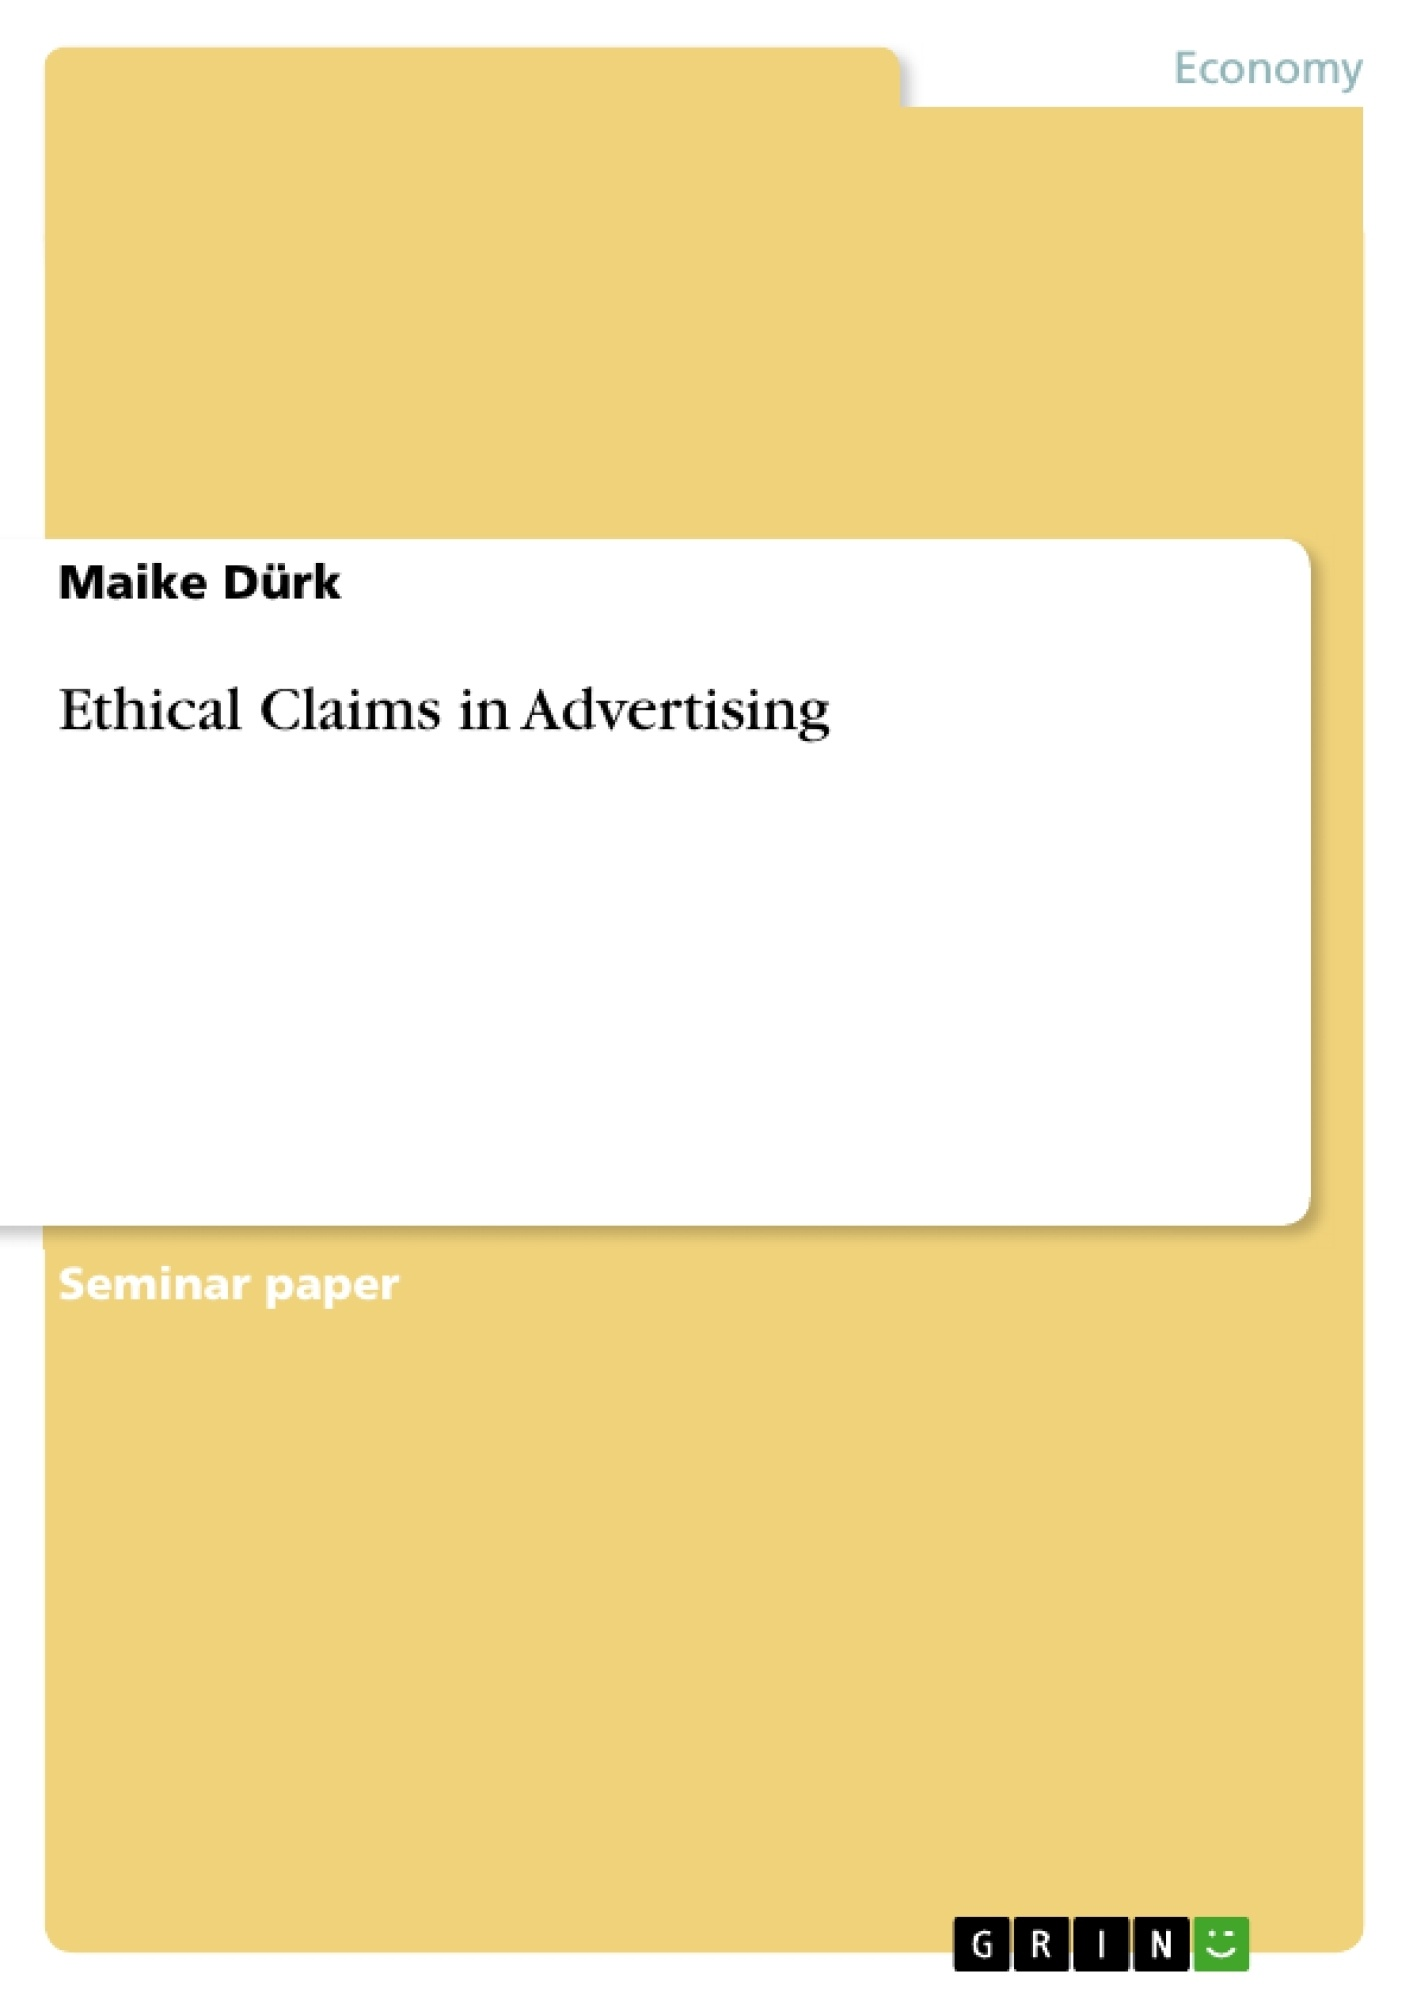 Title: Ethical Claims in Advertising